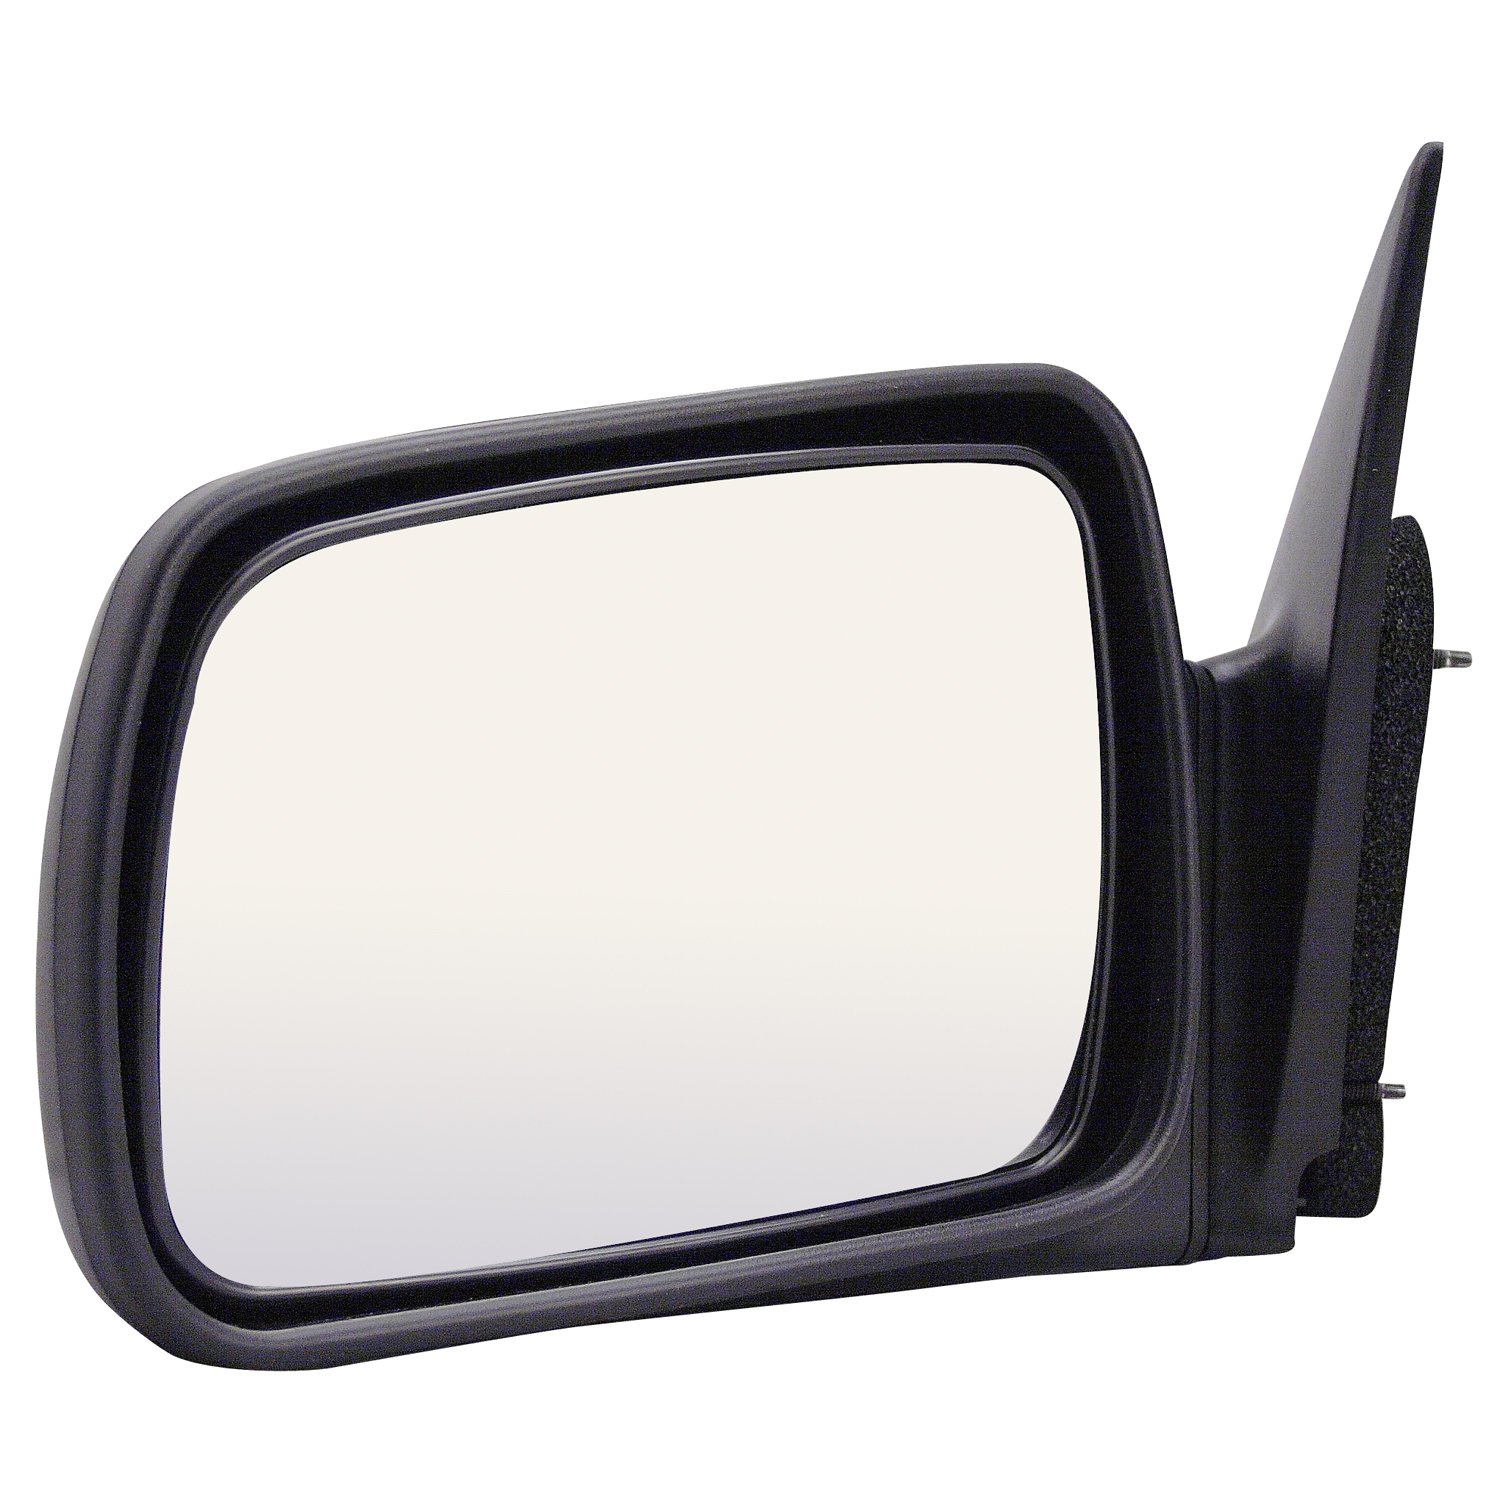 Pilot 4120232 Jeep Grand Cherokee Black Power Heated Replacement Driver Side Mirror